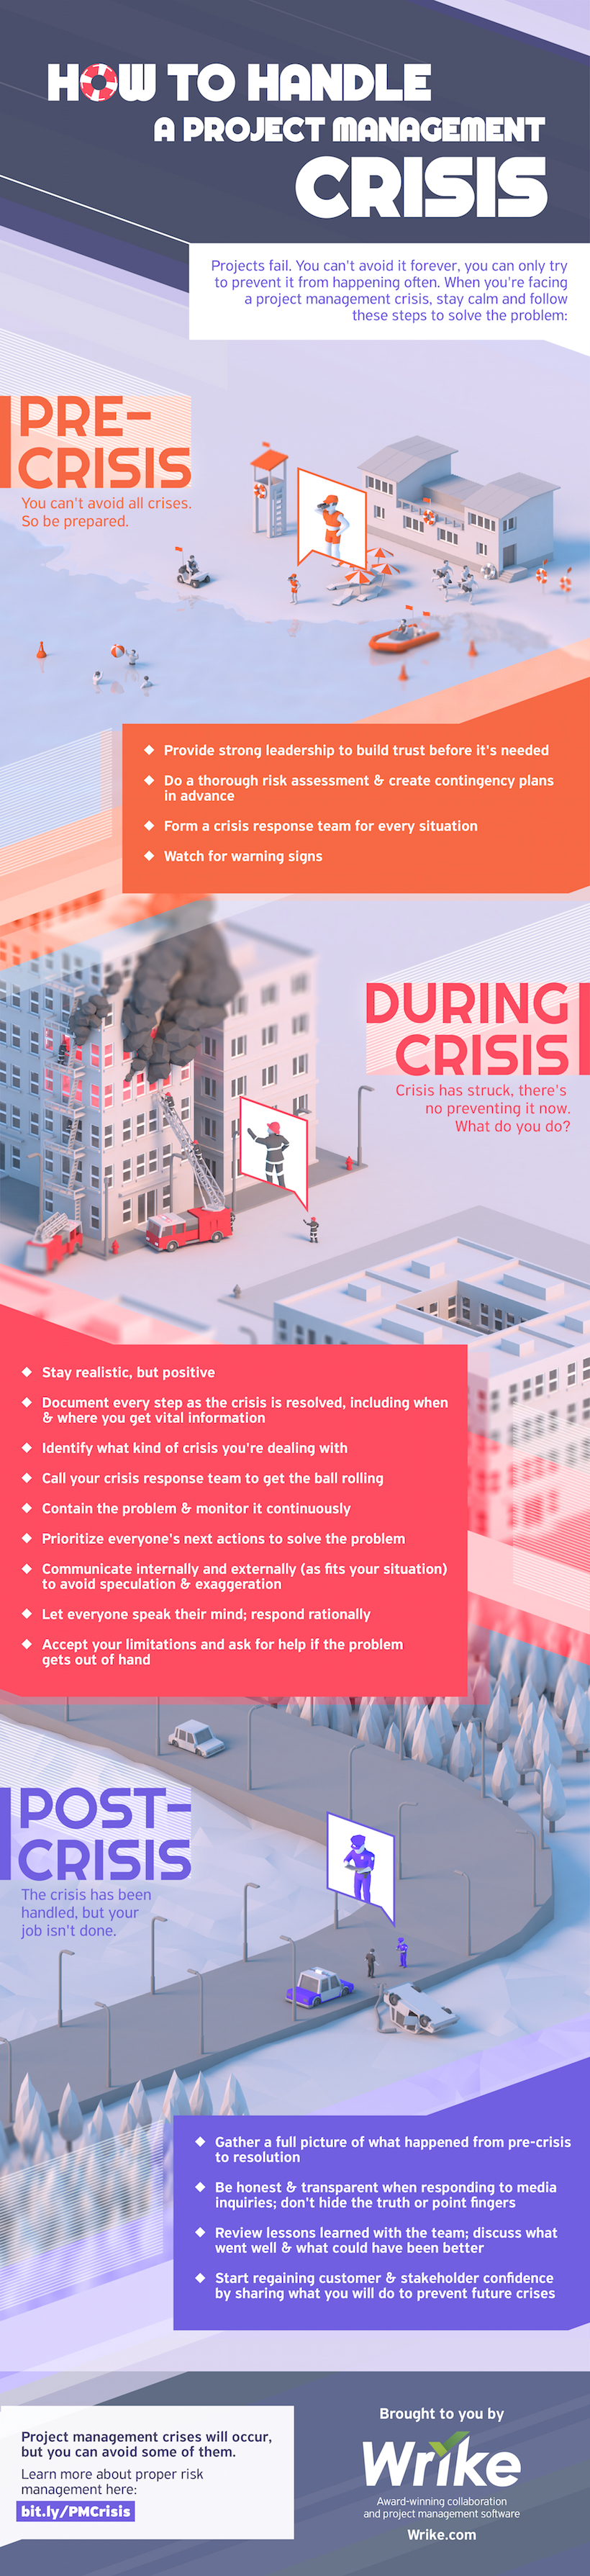 How to Handle a Project Management Crisis (Infographic)